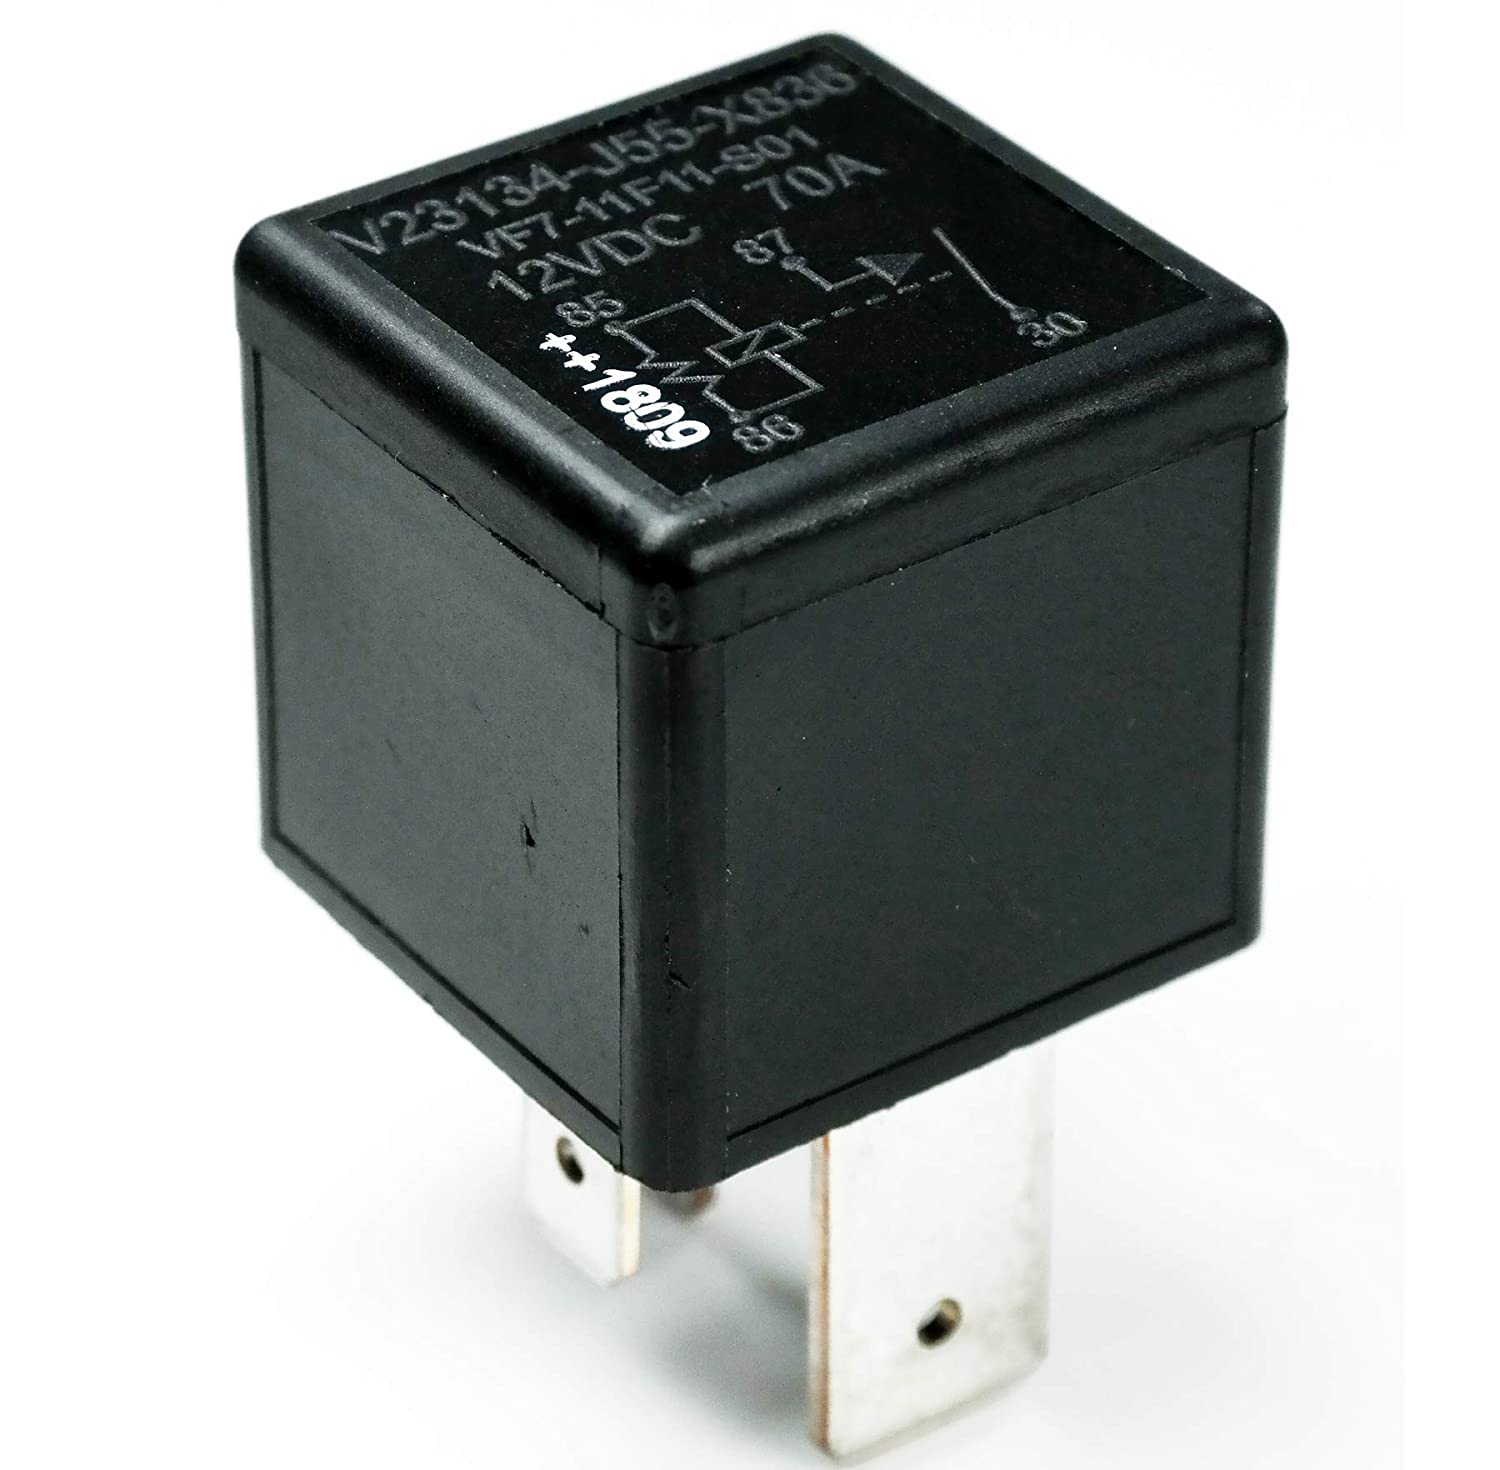 4-1393306-6 TE Connectivity//Tyco VF7-11F11-S01 Automotive Relay 12V 70 AMP Plug-in